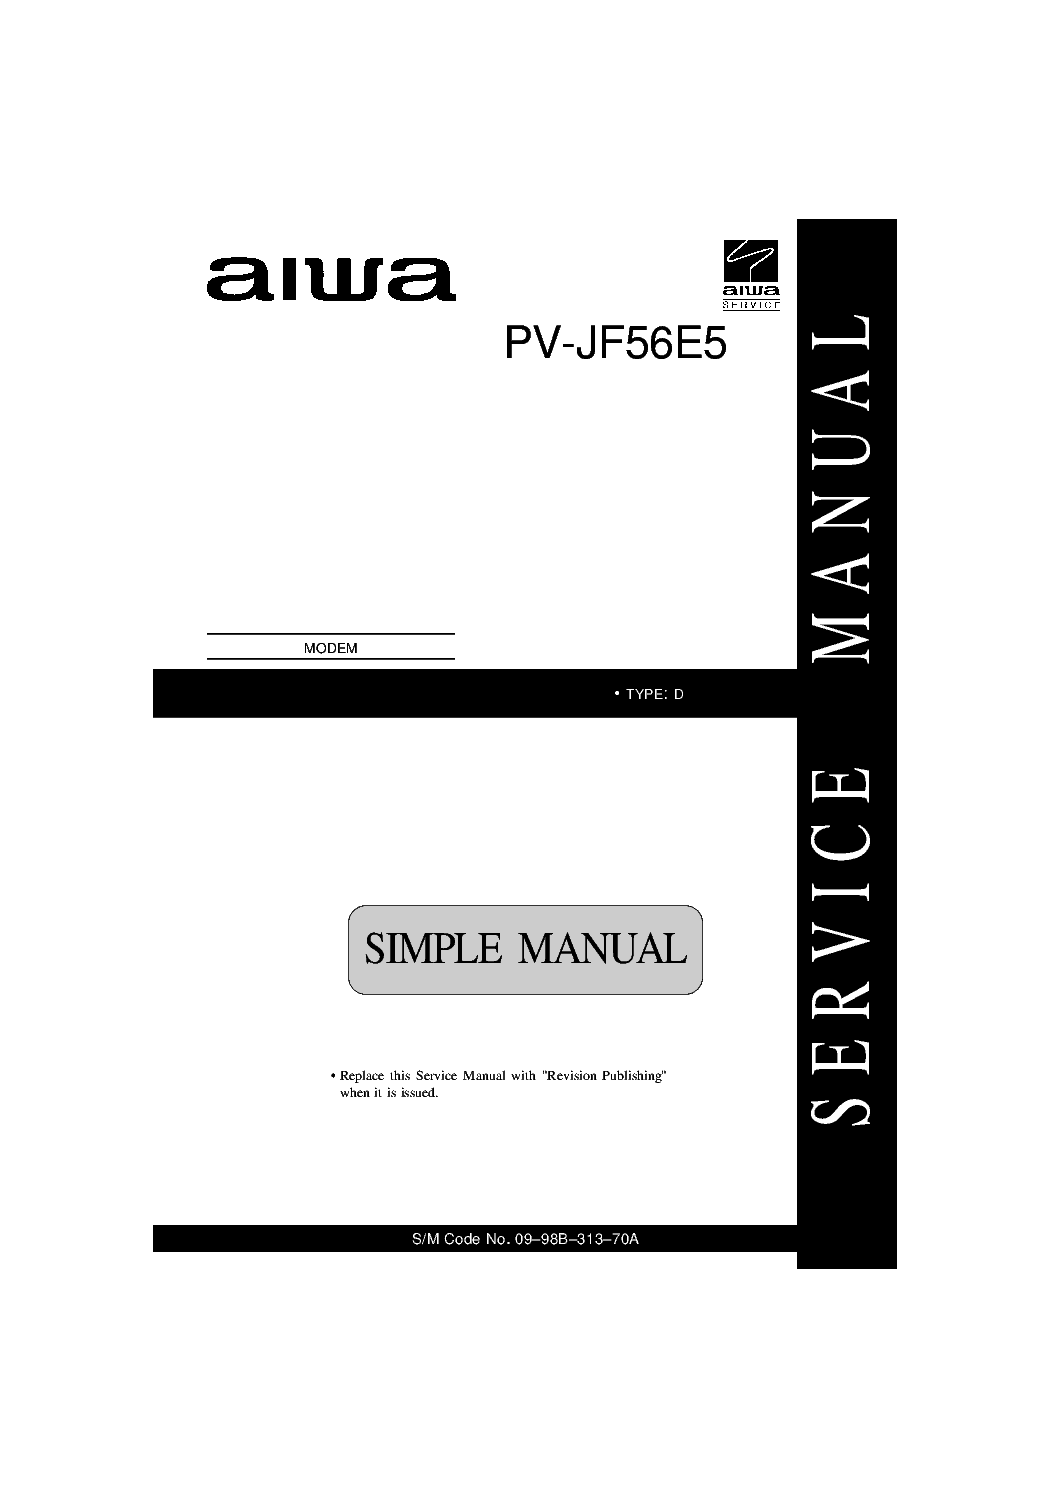 AIWA PV-BW5605 DRIVER FOR WINDOWS